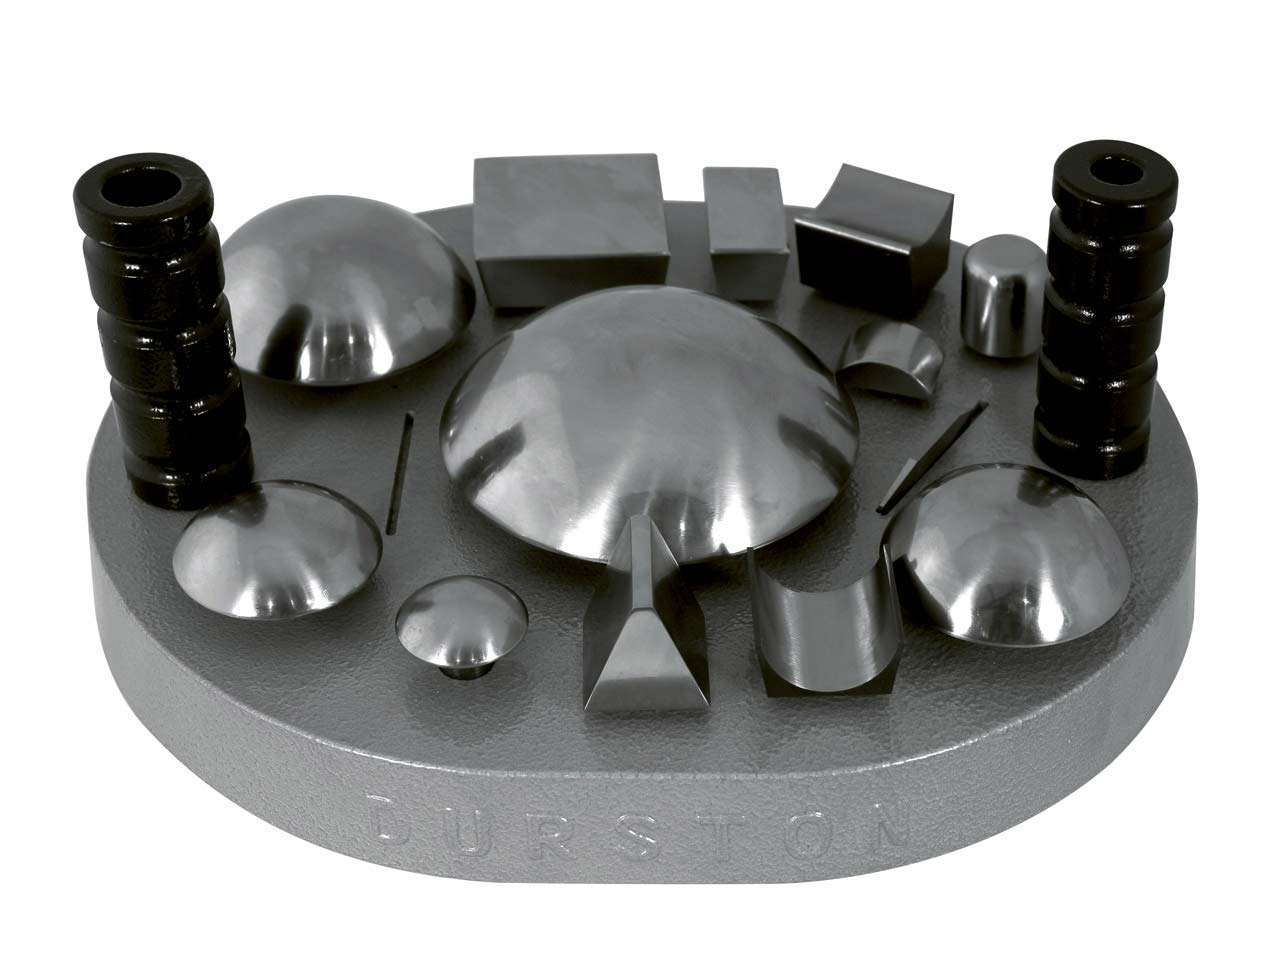 Durston Planishing Domed Set